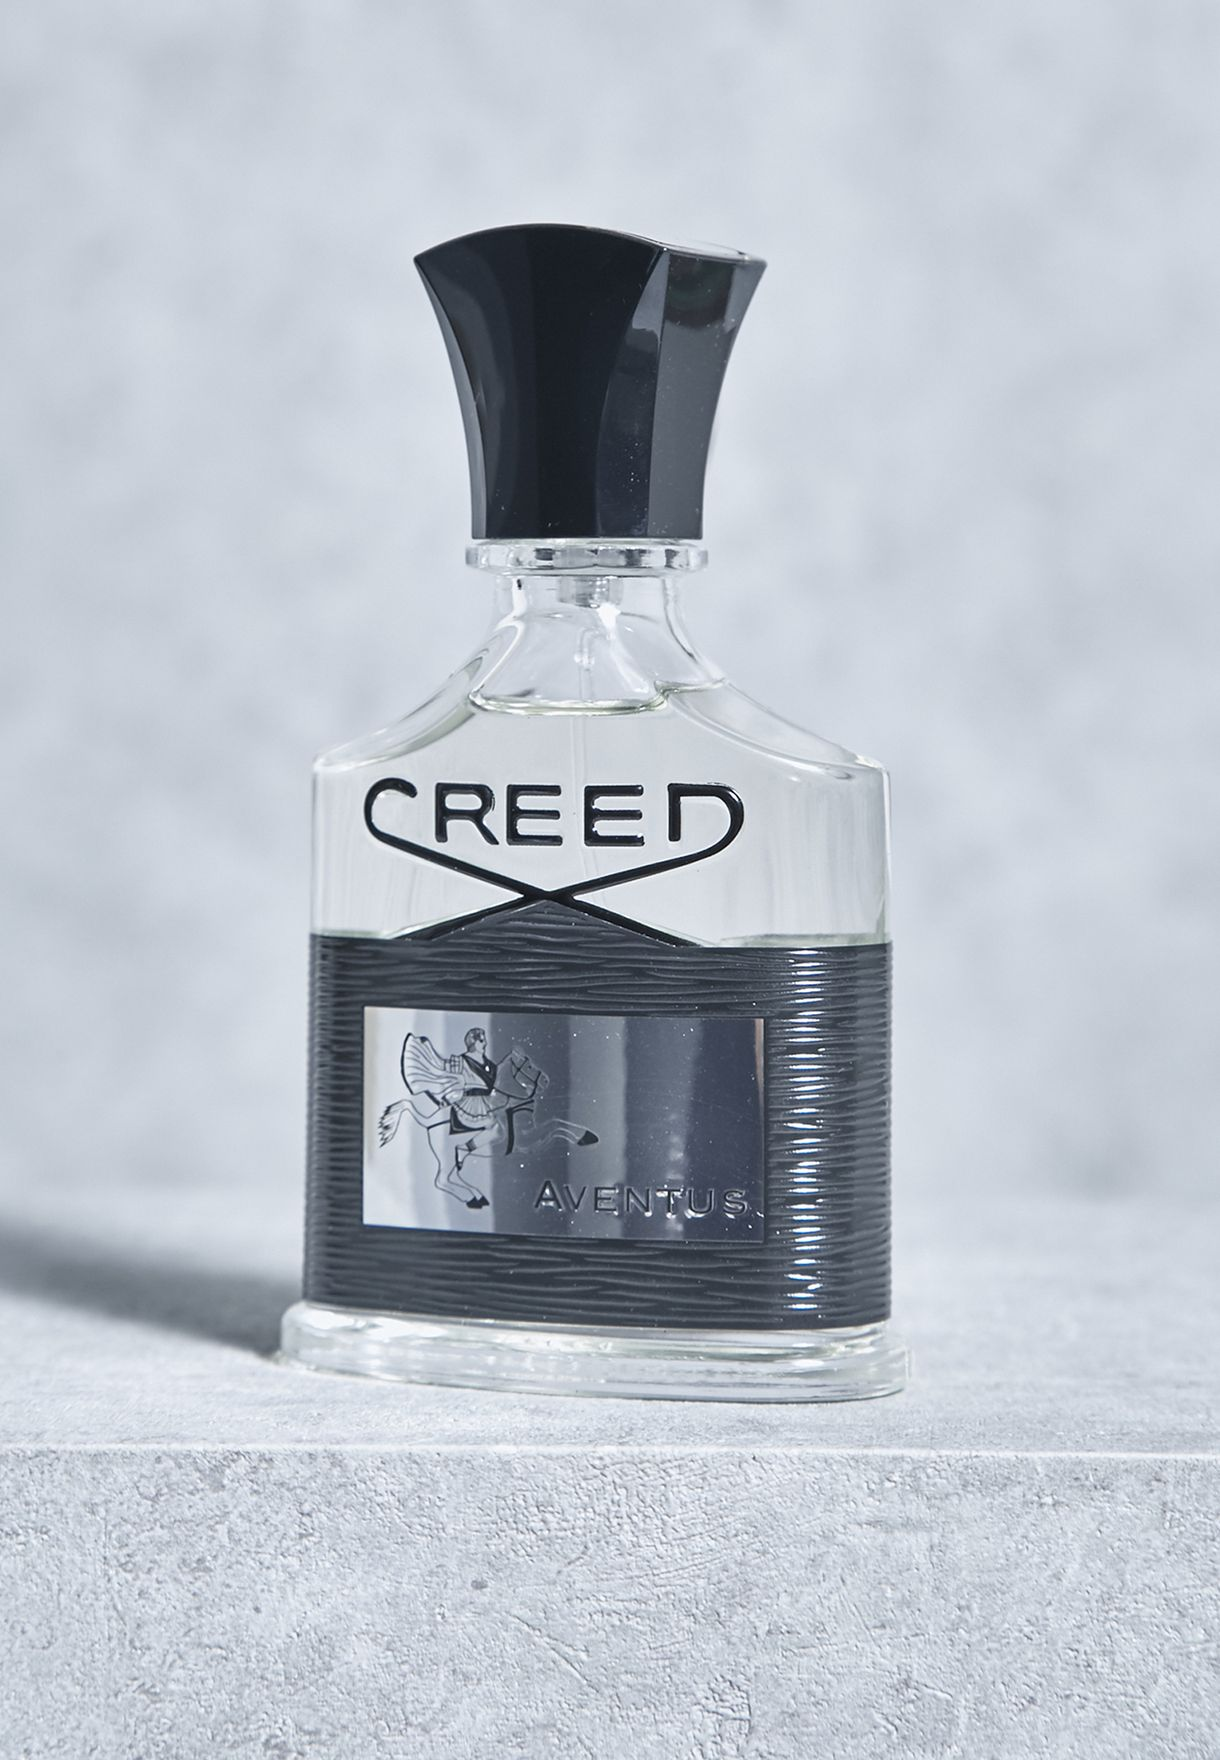 Shop Creed White Creed Aventus 75ml Edp 3508441104426 For Men In